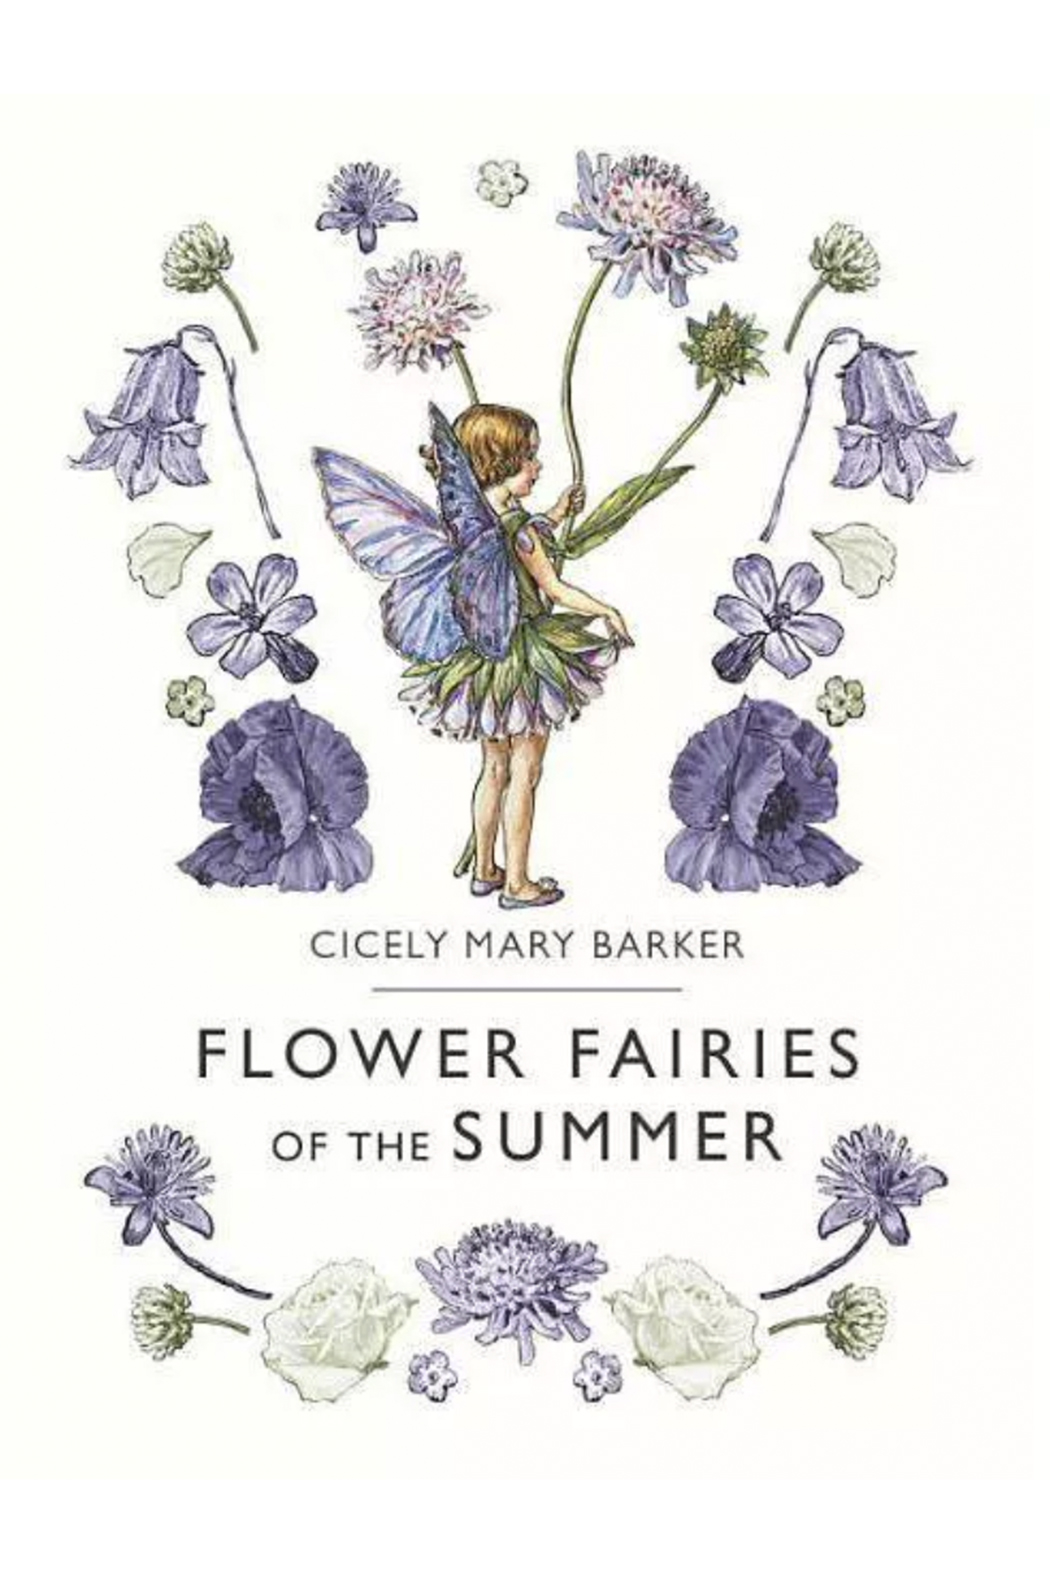 Penguin Books Cicely Mary Baker: Flower Fairies Of The Summer - Main Image